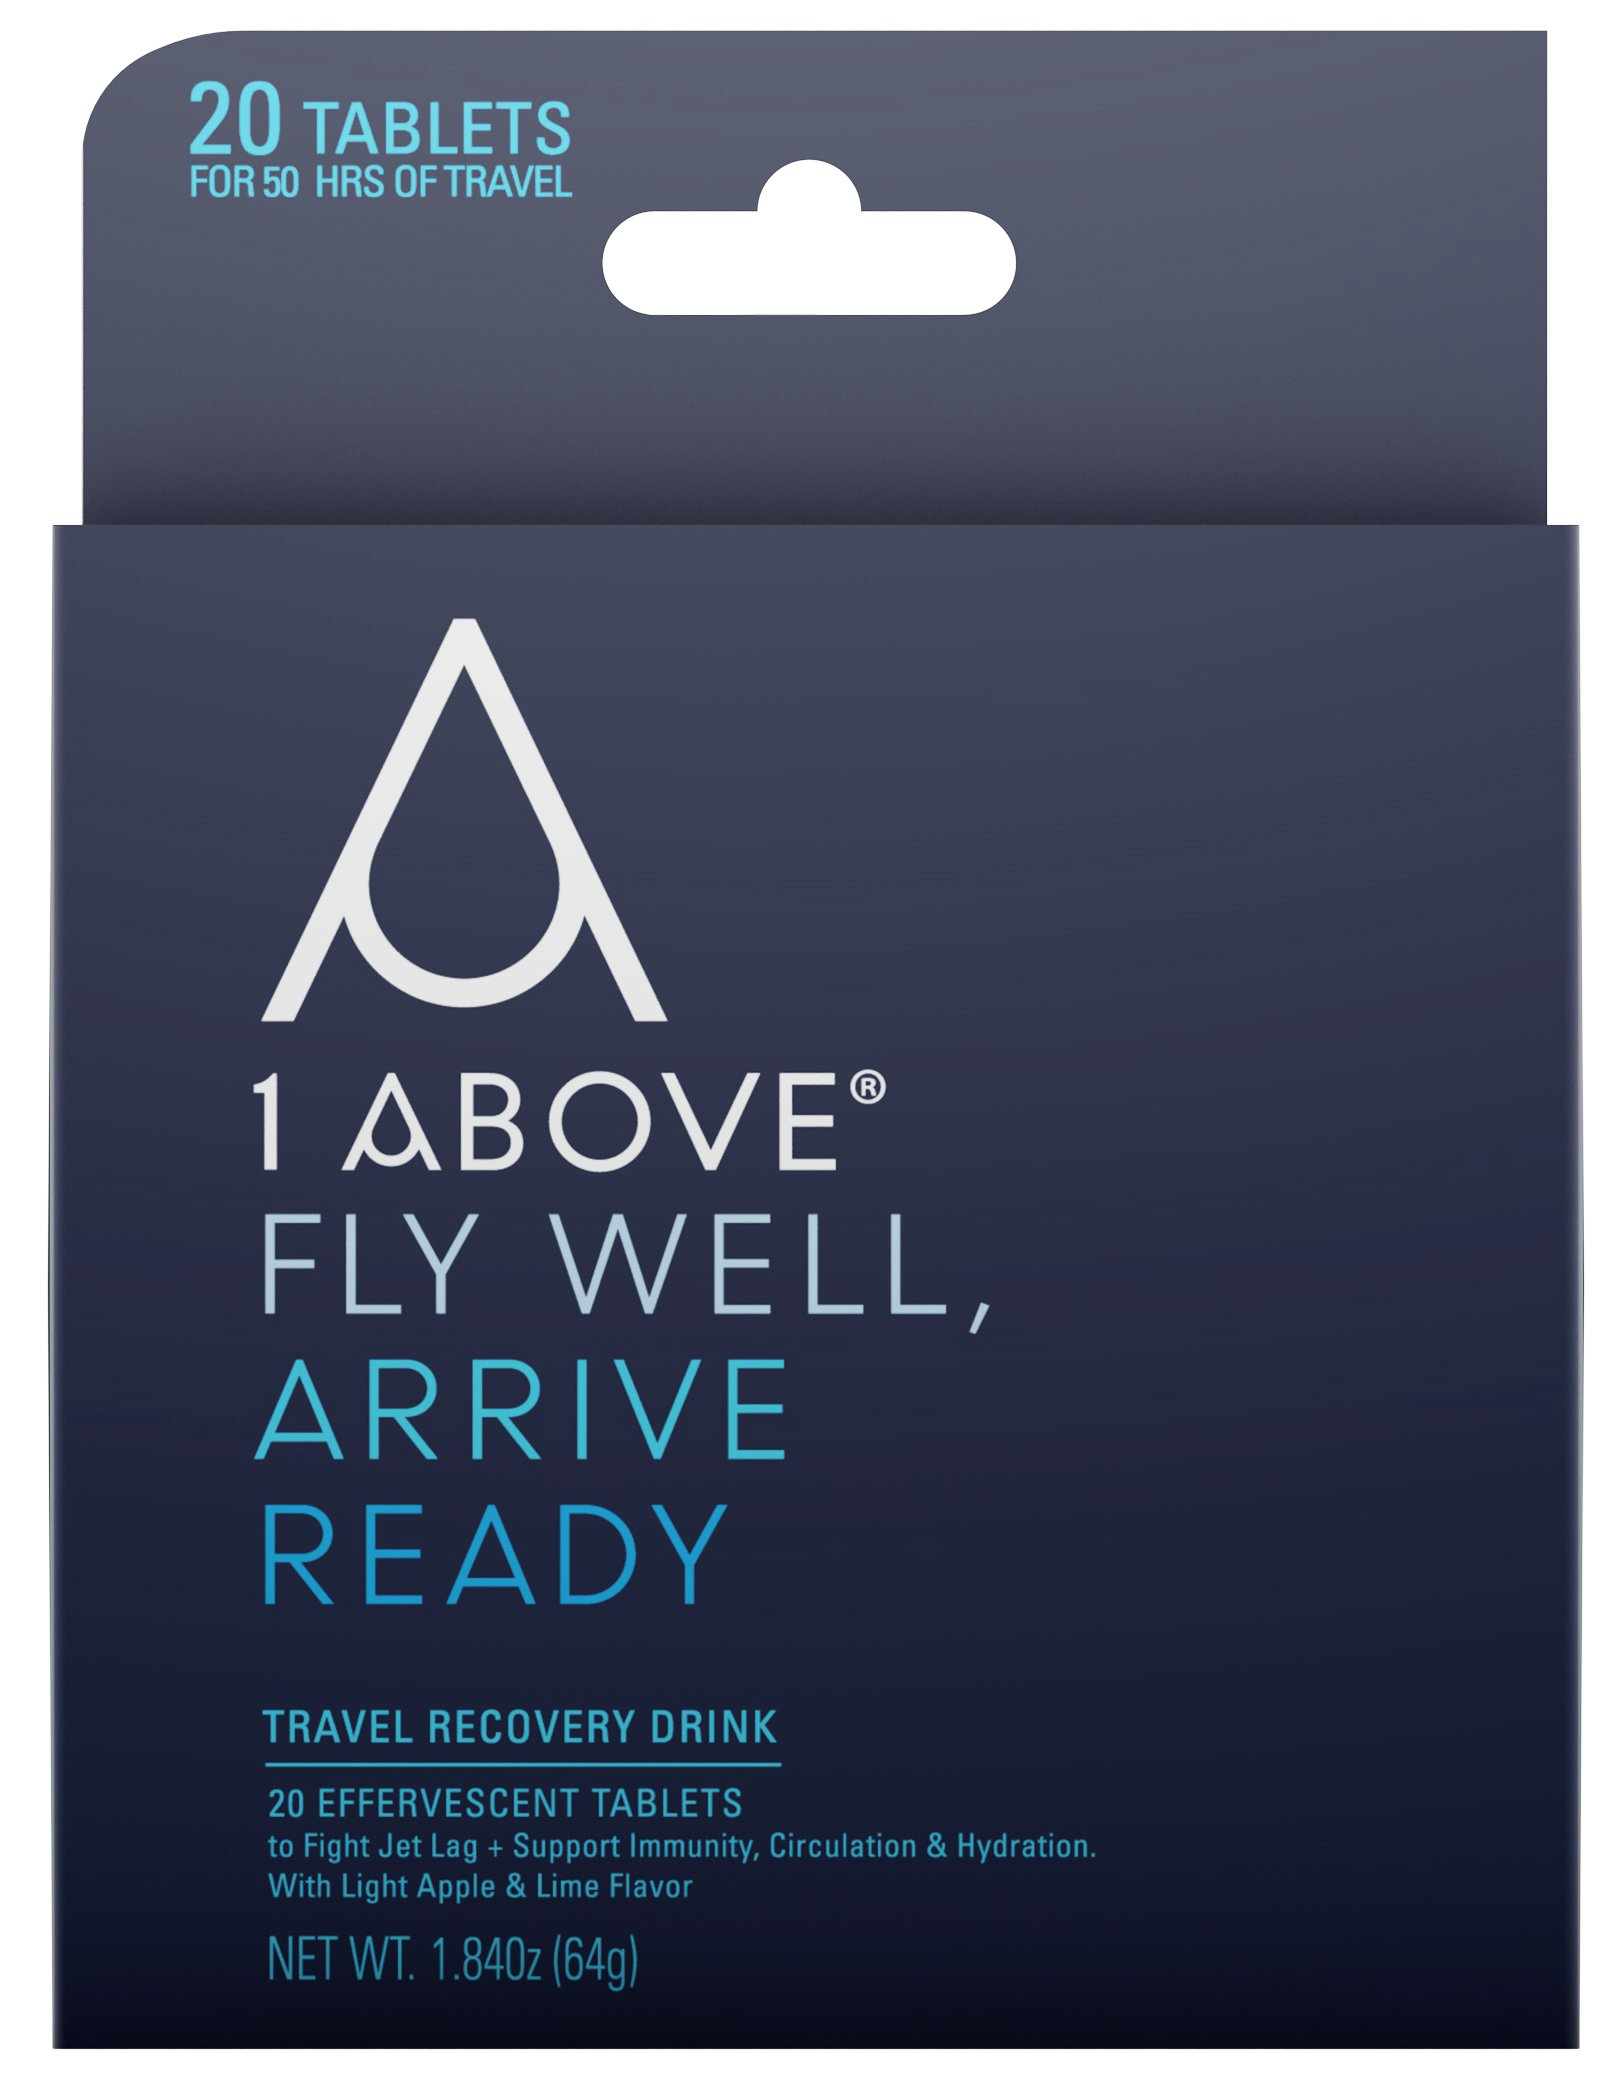 1Above Anti Jet Lag Flight Drink Tablets for Prevention and Relief from Travel Fatigue - Used by Pilots, Business Travelers - Pycnogenol Helps Energy, Circulation and Hydration When Flying - 20 Count by 1Above (Image #1)